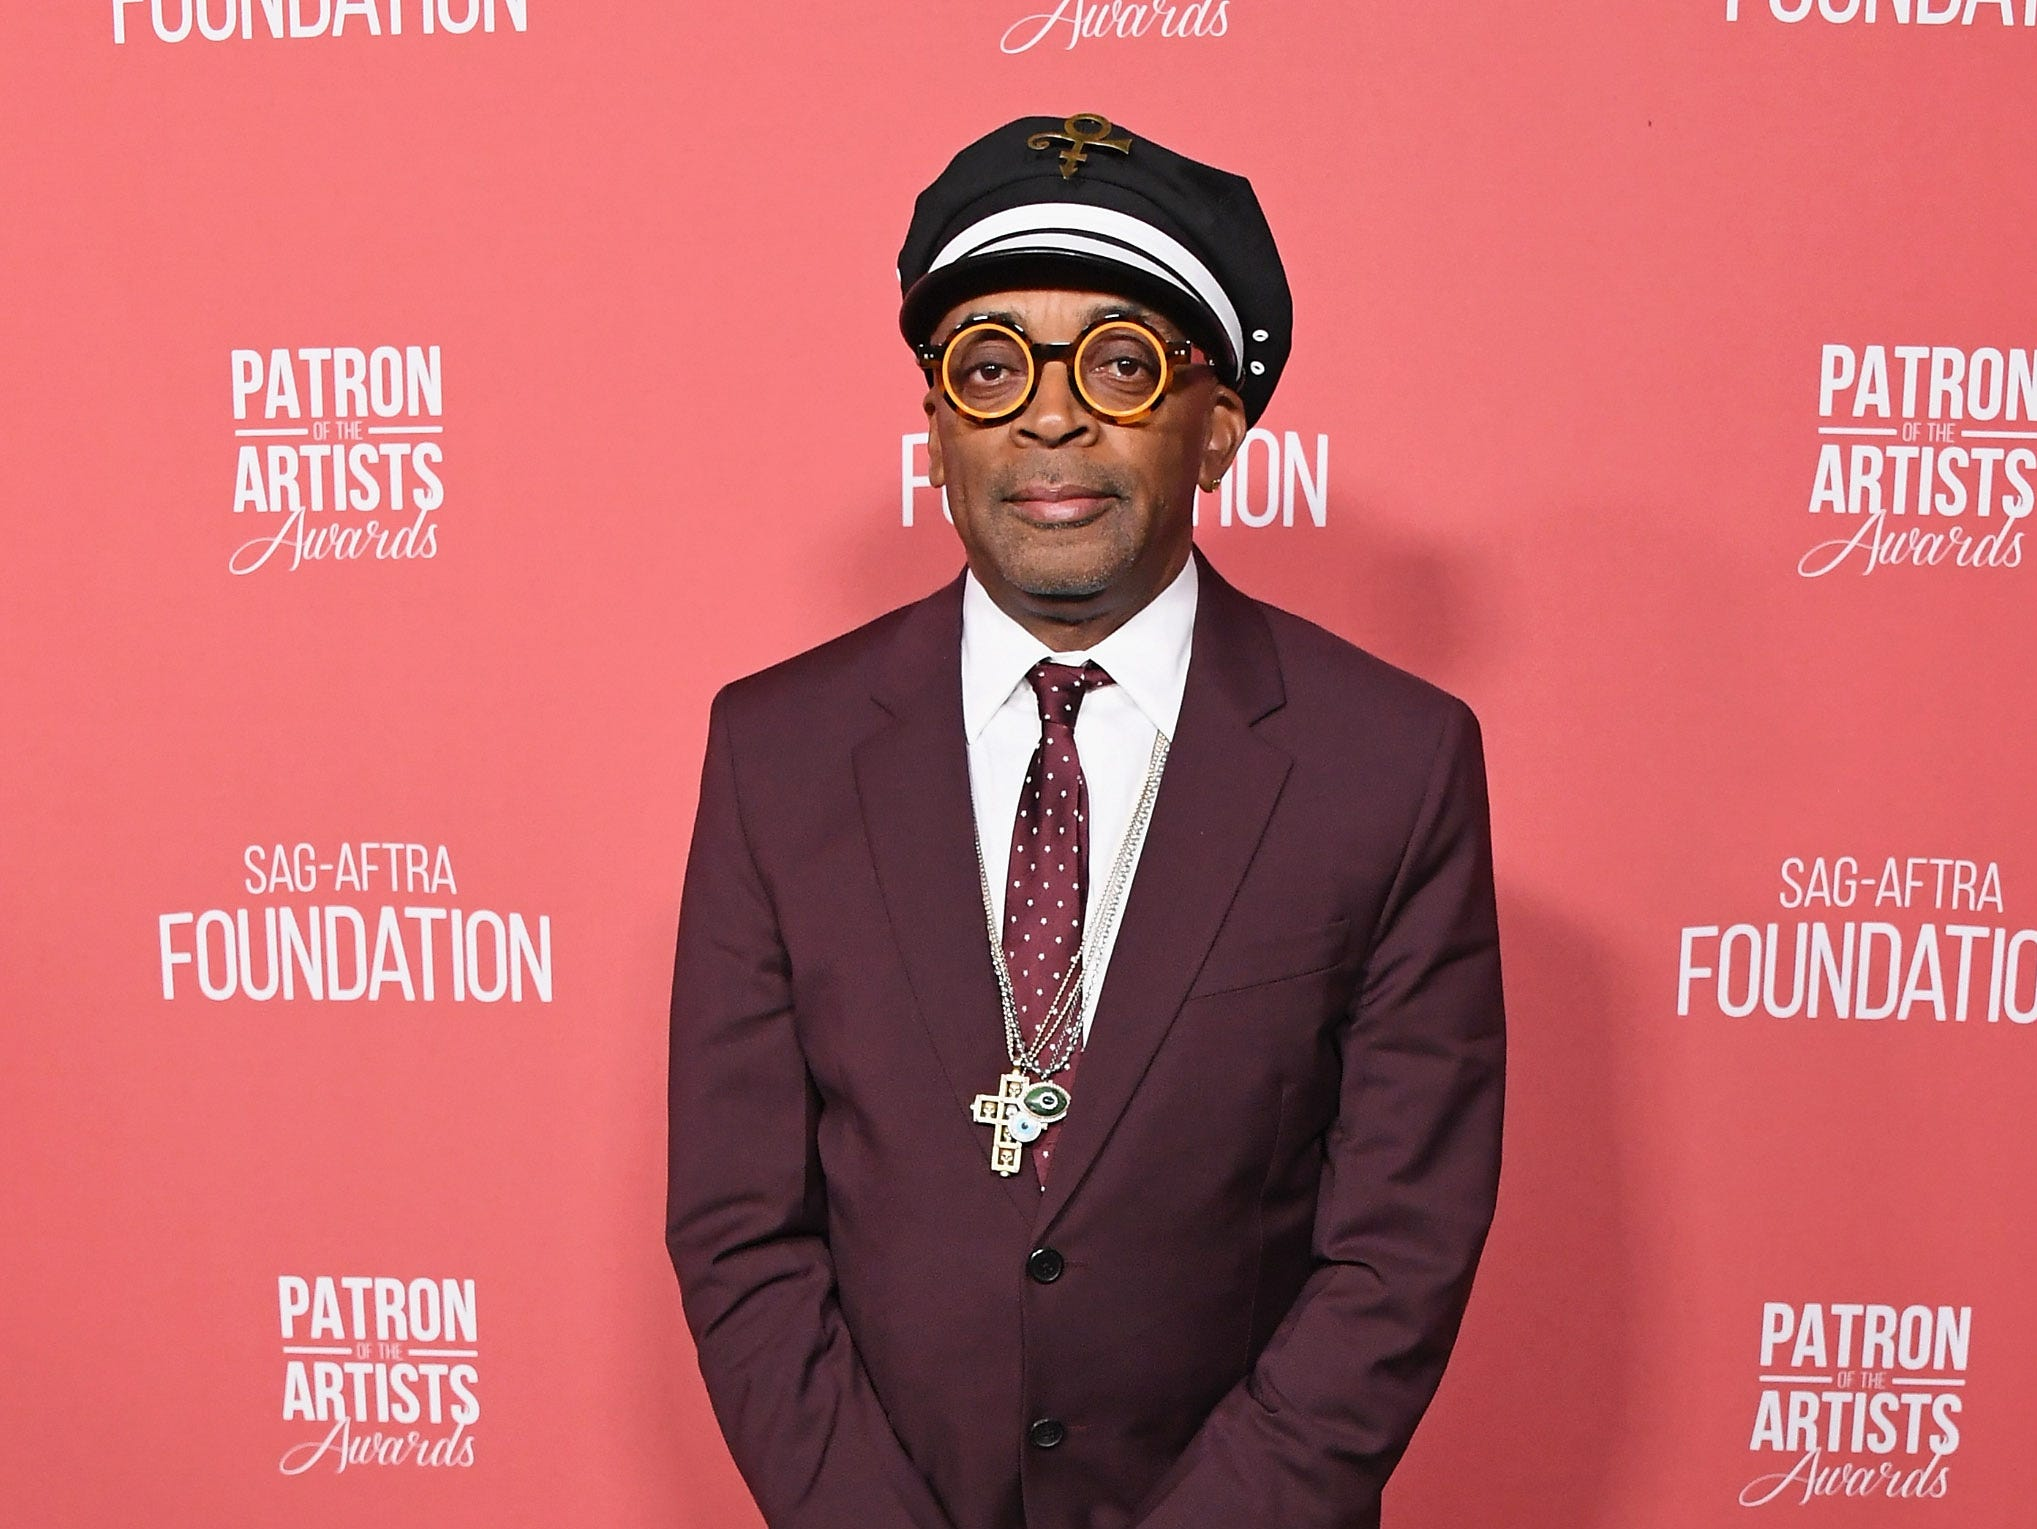 BEVERLY HILLS, CA - NOVEMBER 08:  Spike Lee attends SAG-AFTRA Foundation's 3rd Annual Patron Of The Artists Awards at Wallis Annenberg Center for the Performing Arts on November 8, 2018 in Beverly Hills, California.  (Photo by Jon Kopaloff/FilmMagic) ORG XMIT: 775233471 ORIG FILE ID: 1059469632